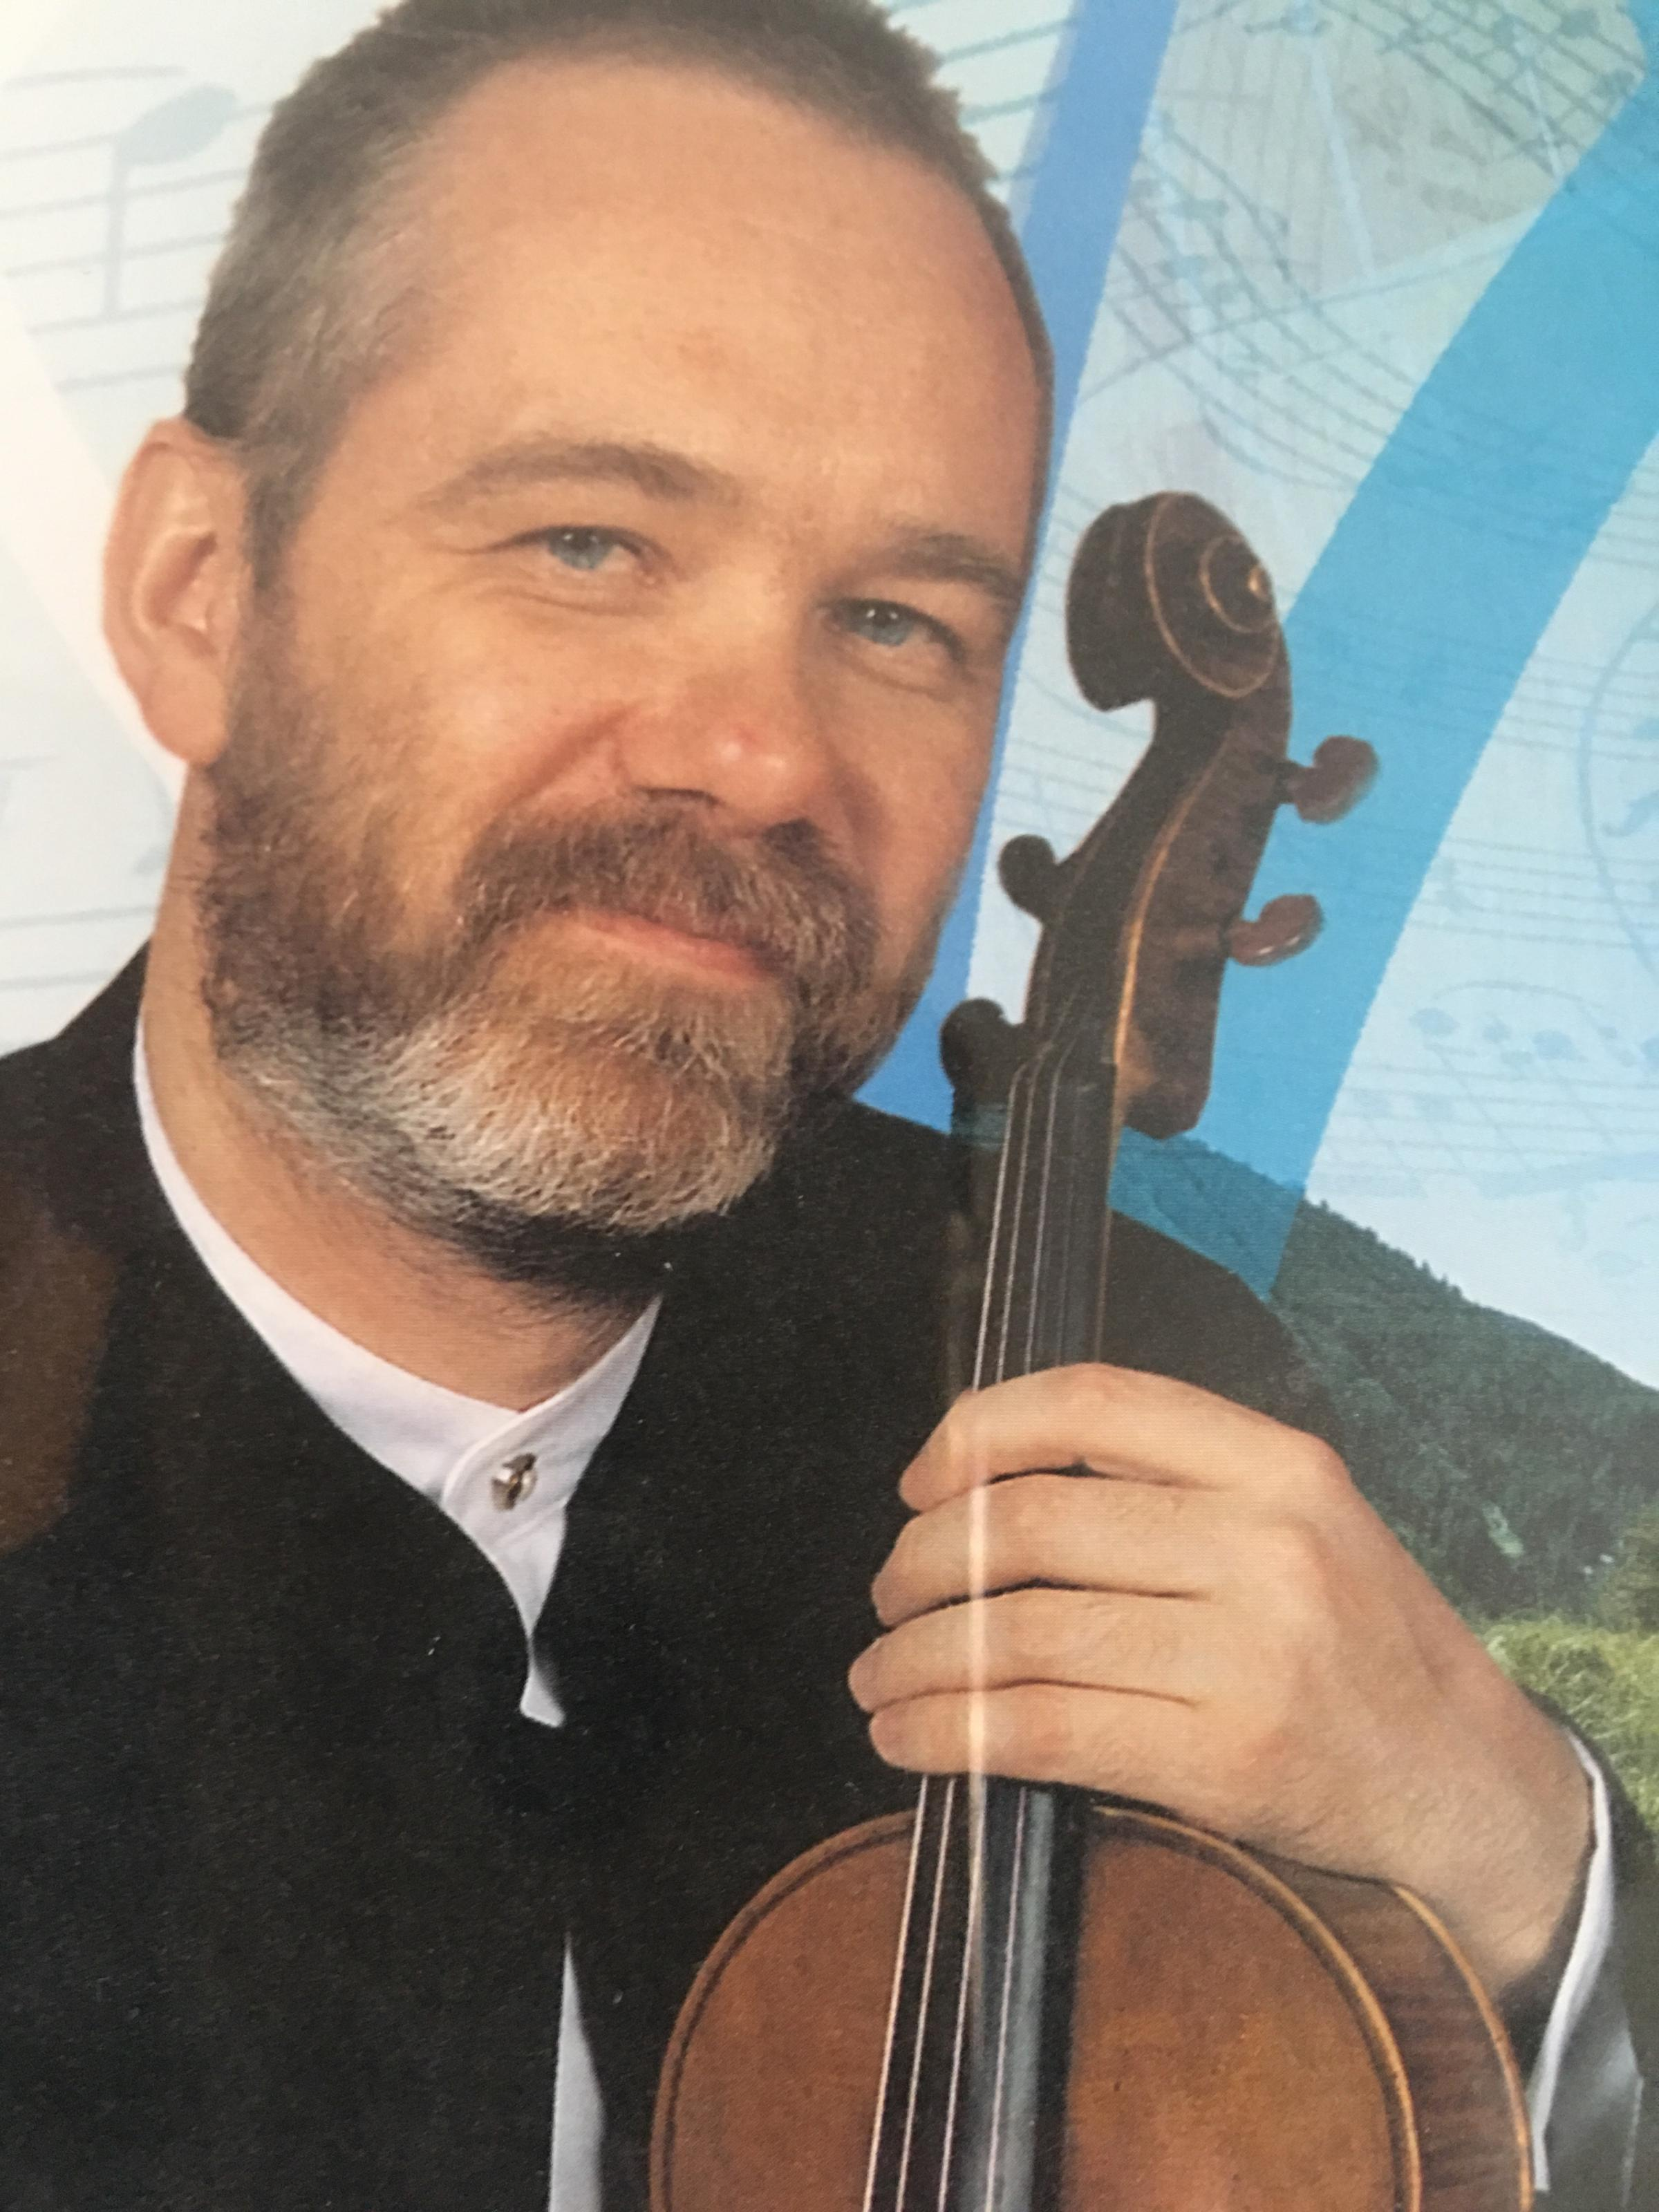 Steven Burnard (pictured) has been BBC Philharmonic Orchestra principal viola for the past 11 years and steps into the soloist spotlight with the Westmorland Orchestra on Saturday (December 2, 7.30pm) at Kendal Leisure Centre's Westmorland Hall